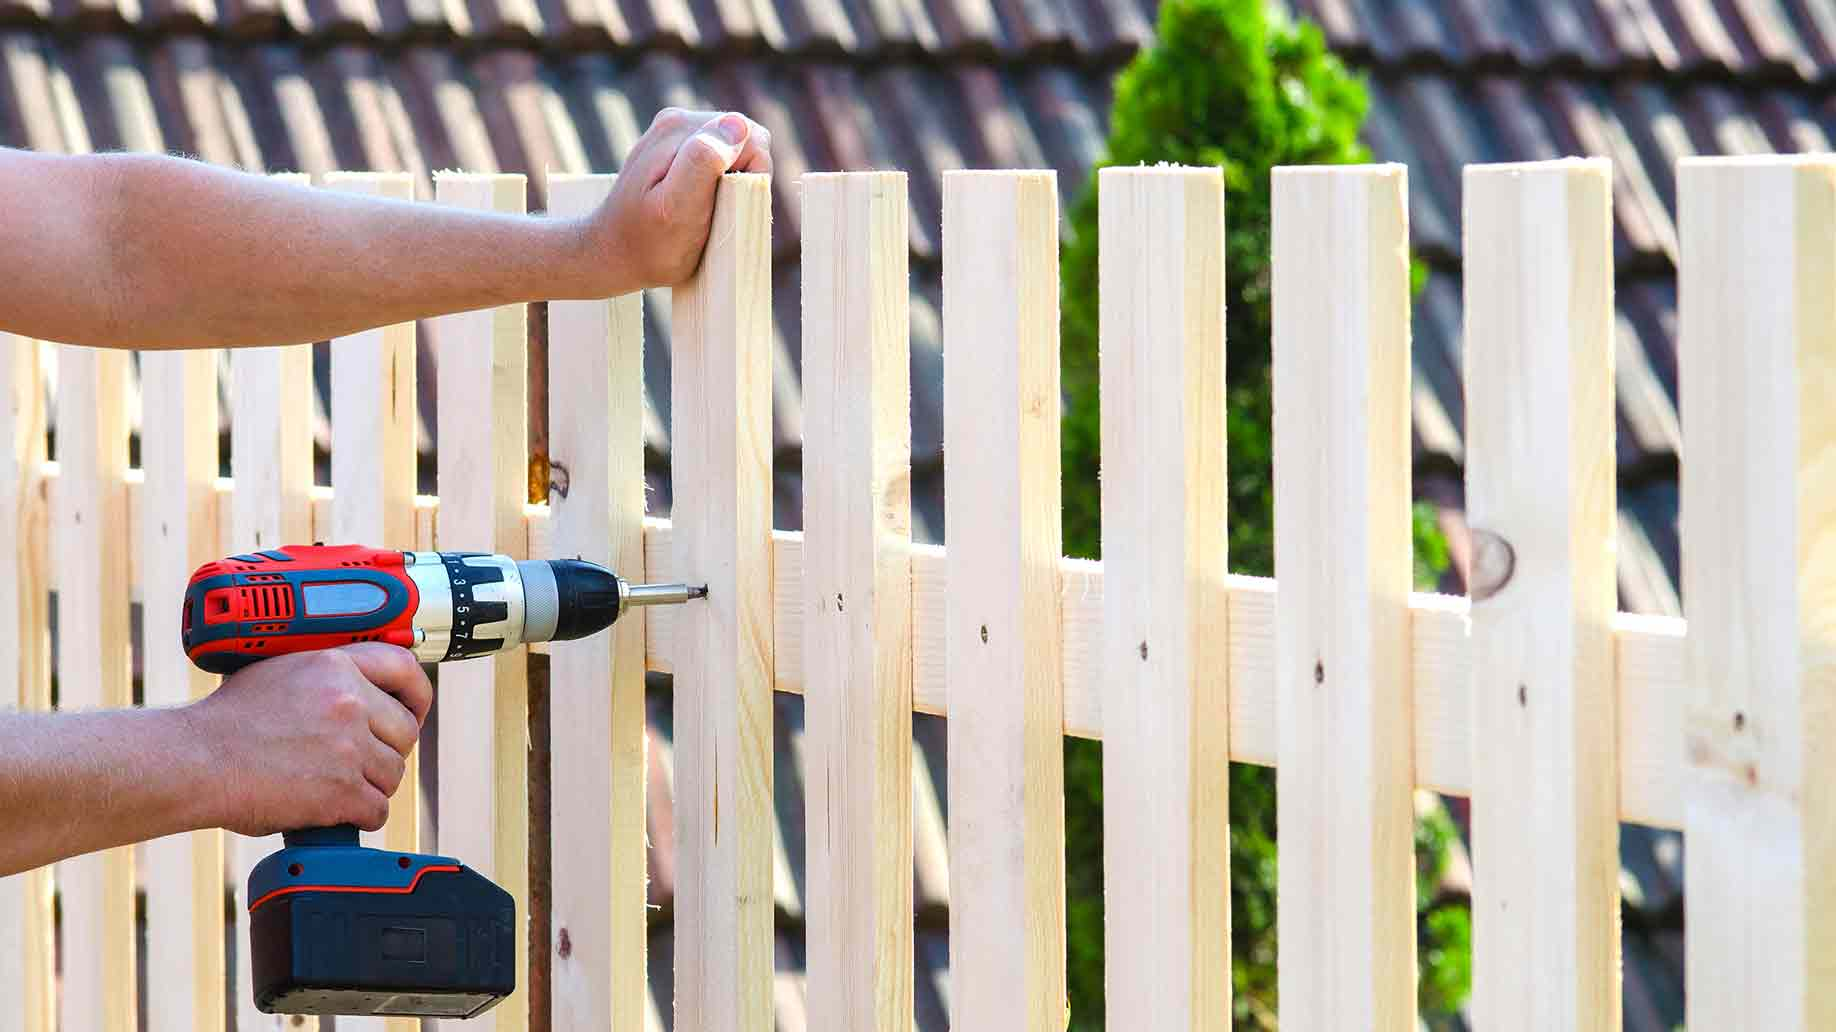 10 DIY Projects You Can Make Out of Free Wooden Shipping Pallets